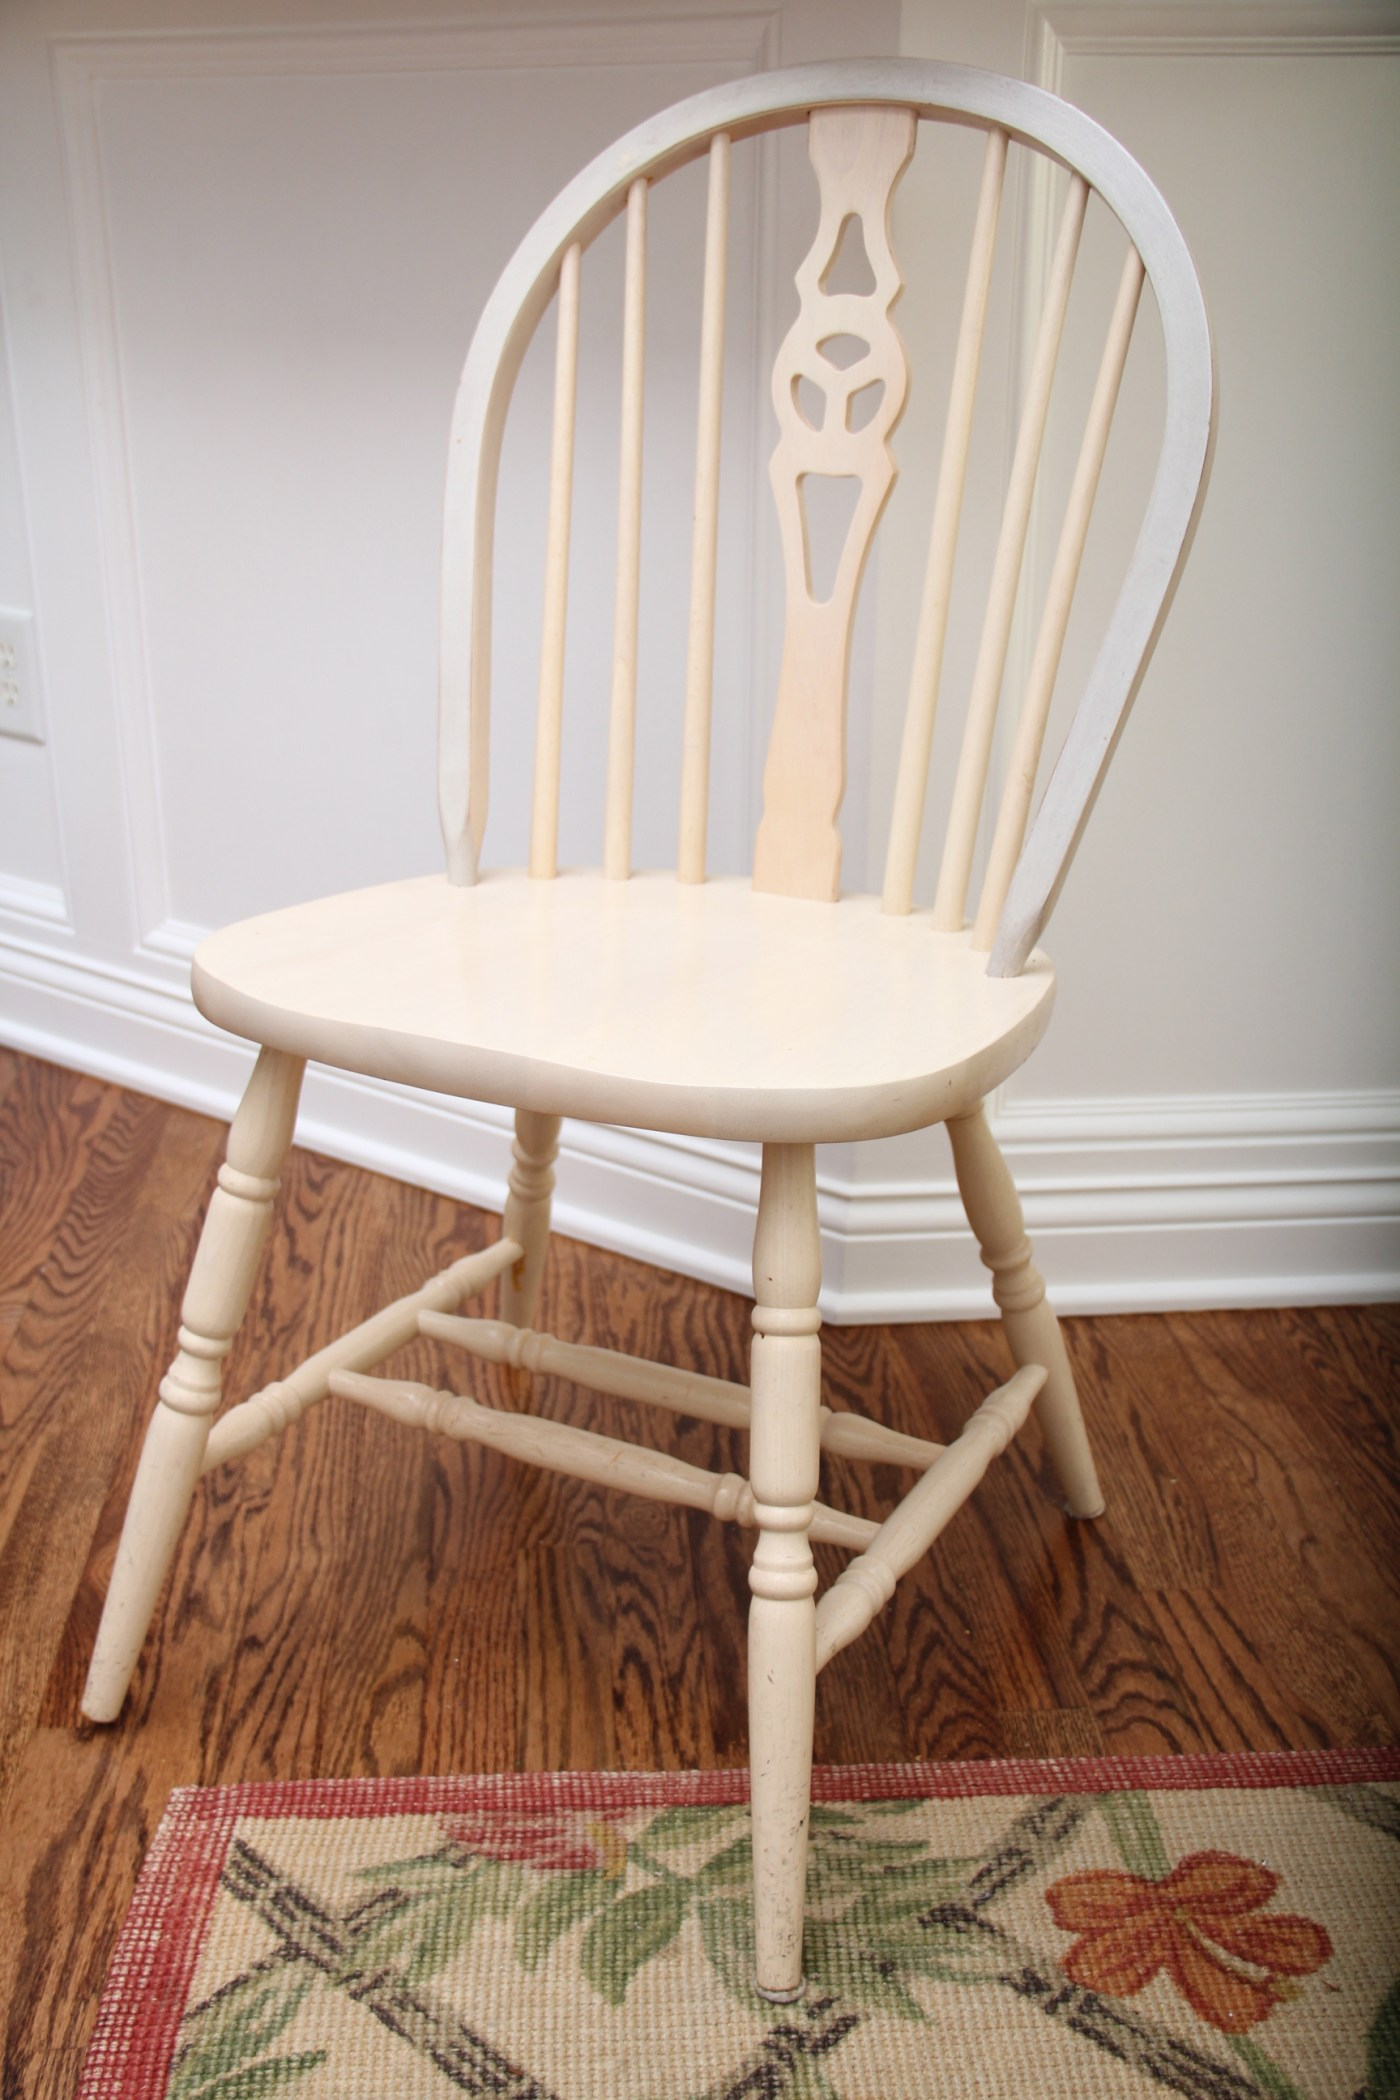 Windsor Style Chairs Farmhouse Style Dining Table With Six Windsor Style Chairs